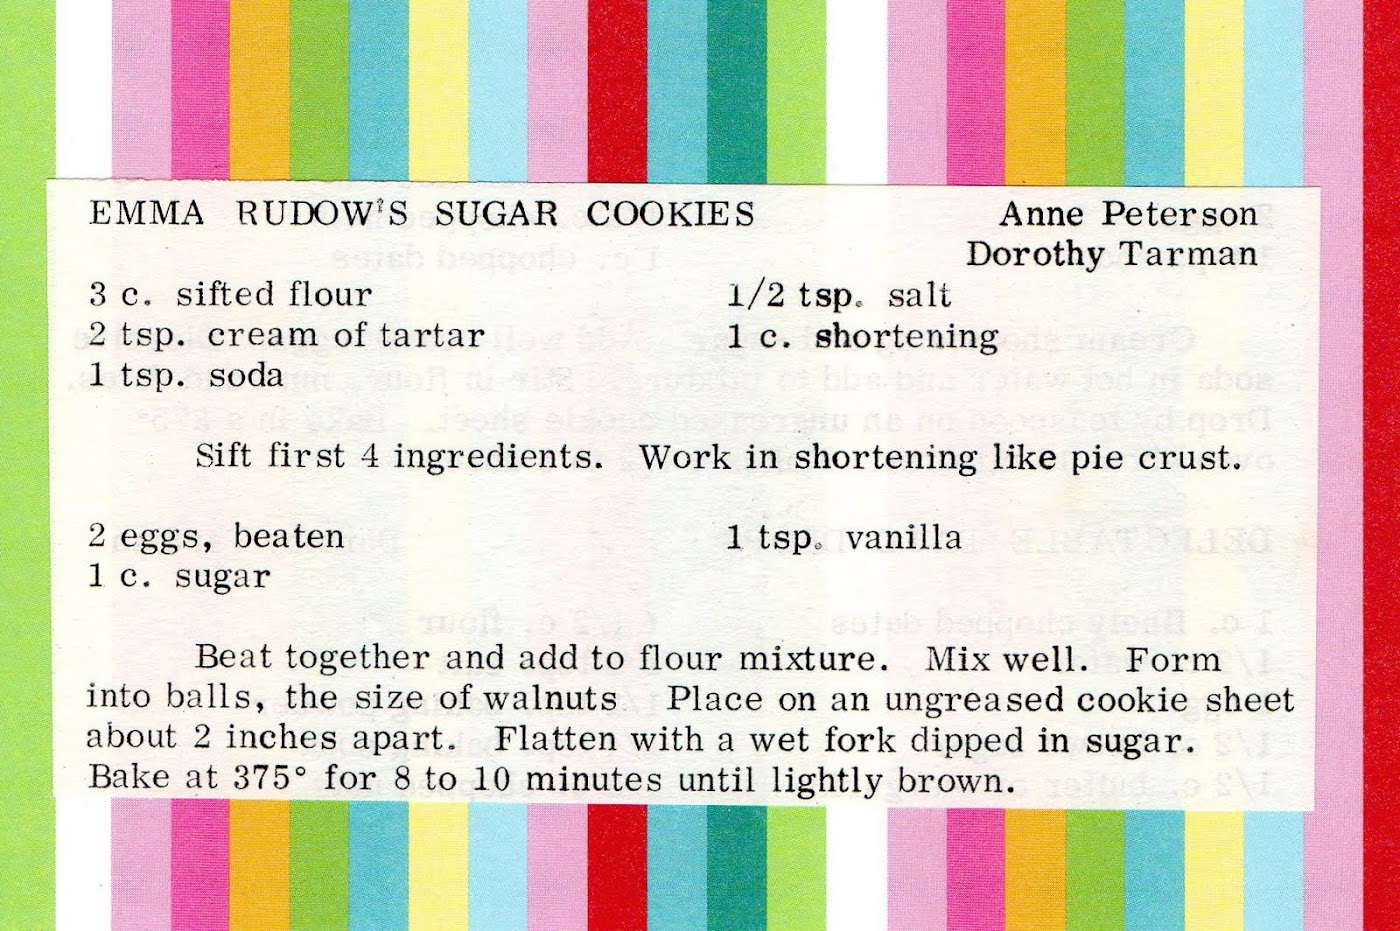 Emma Rudow's Sugar Cookies (quick recipe)